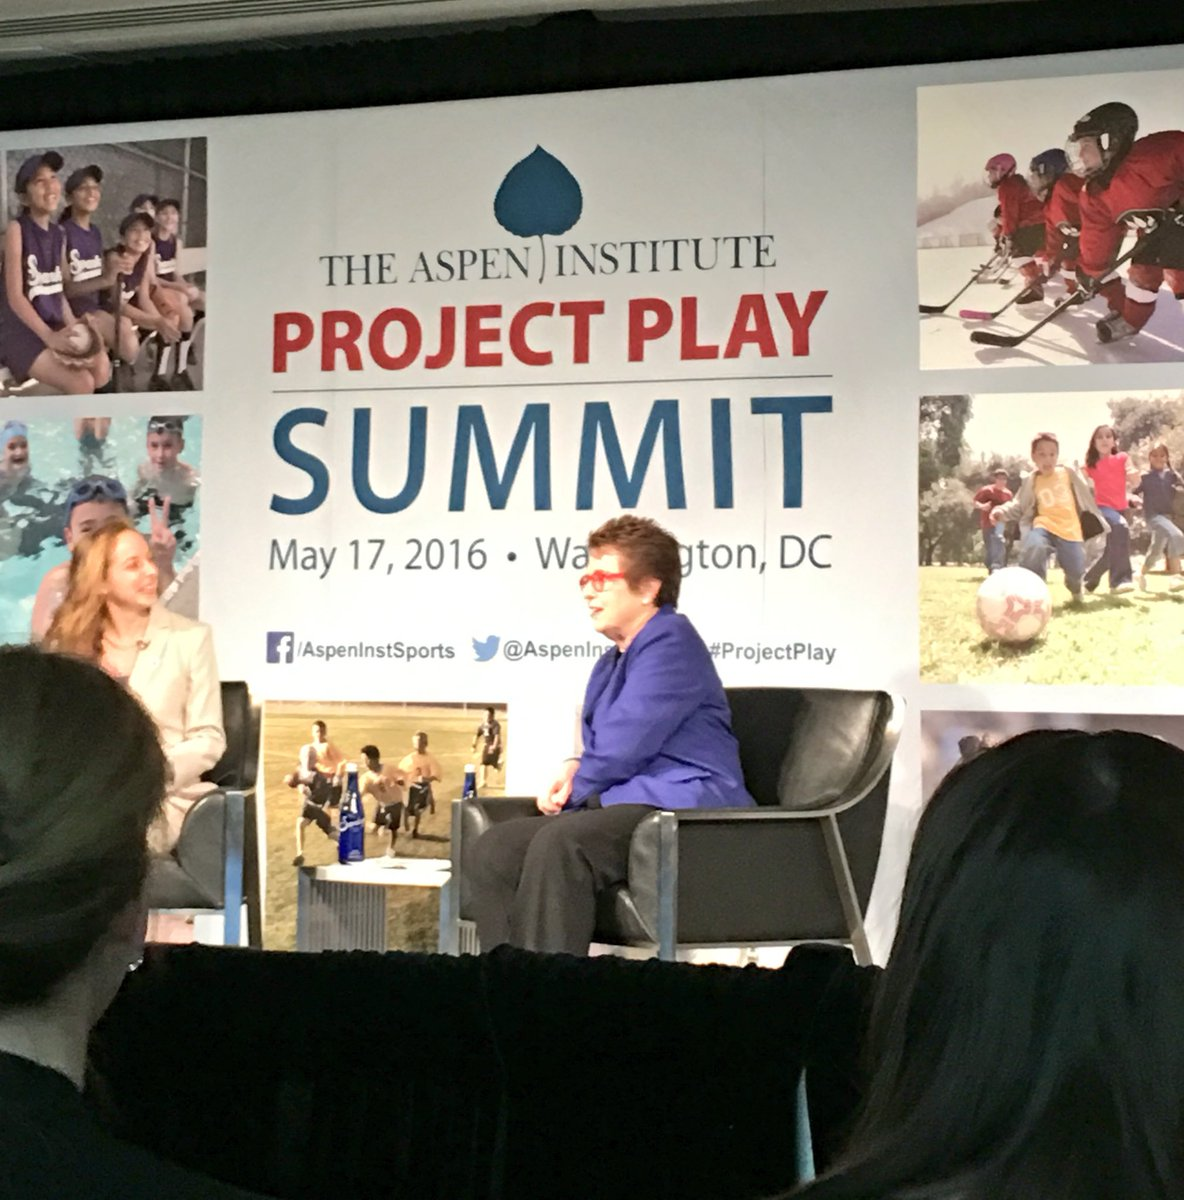 """At that moment I dedicated the rest of my life to equal rights& opportunity for all"" -Billie Jean King #ProjectPlay https://t.co/l2lYXiGRy5"